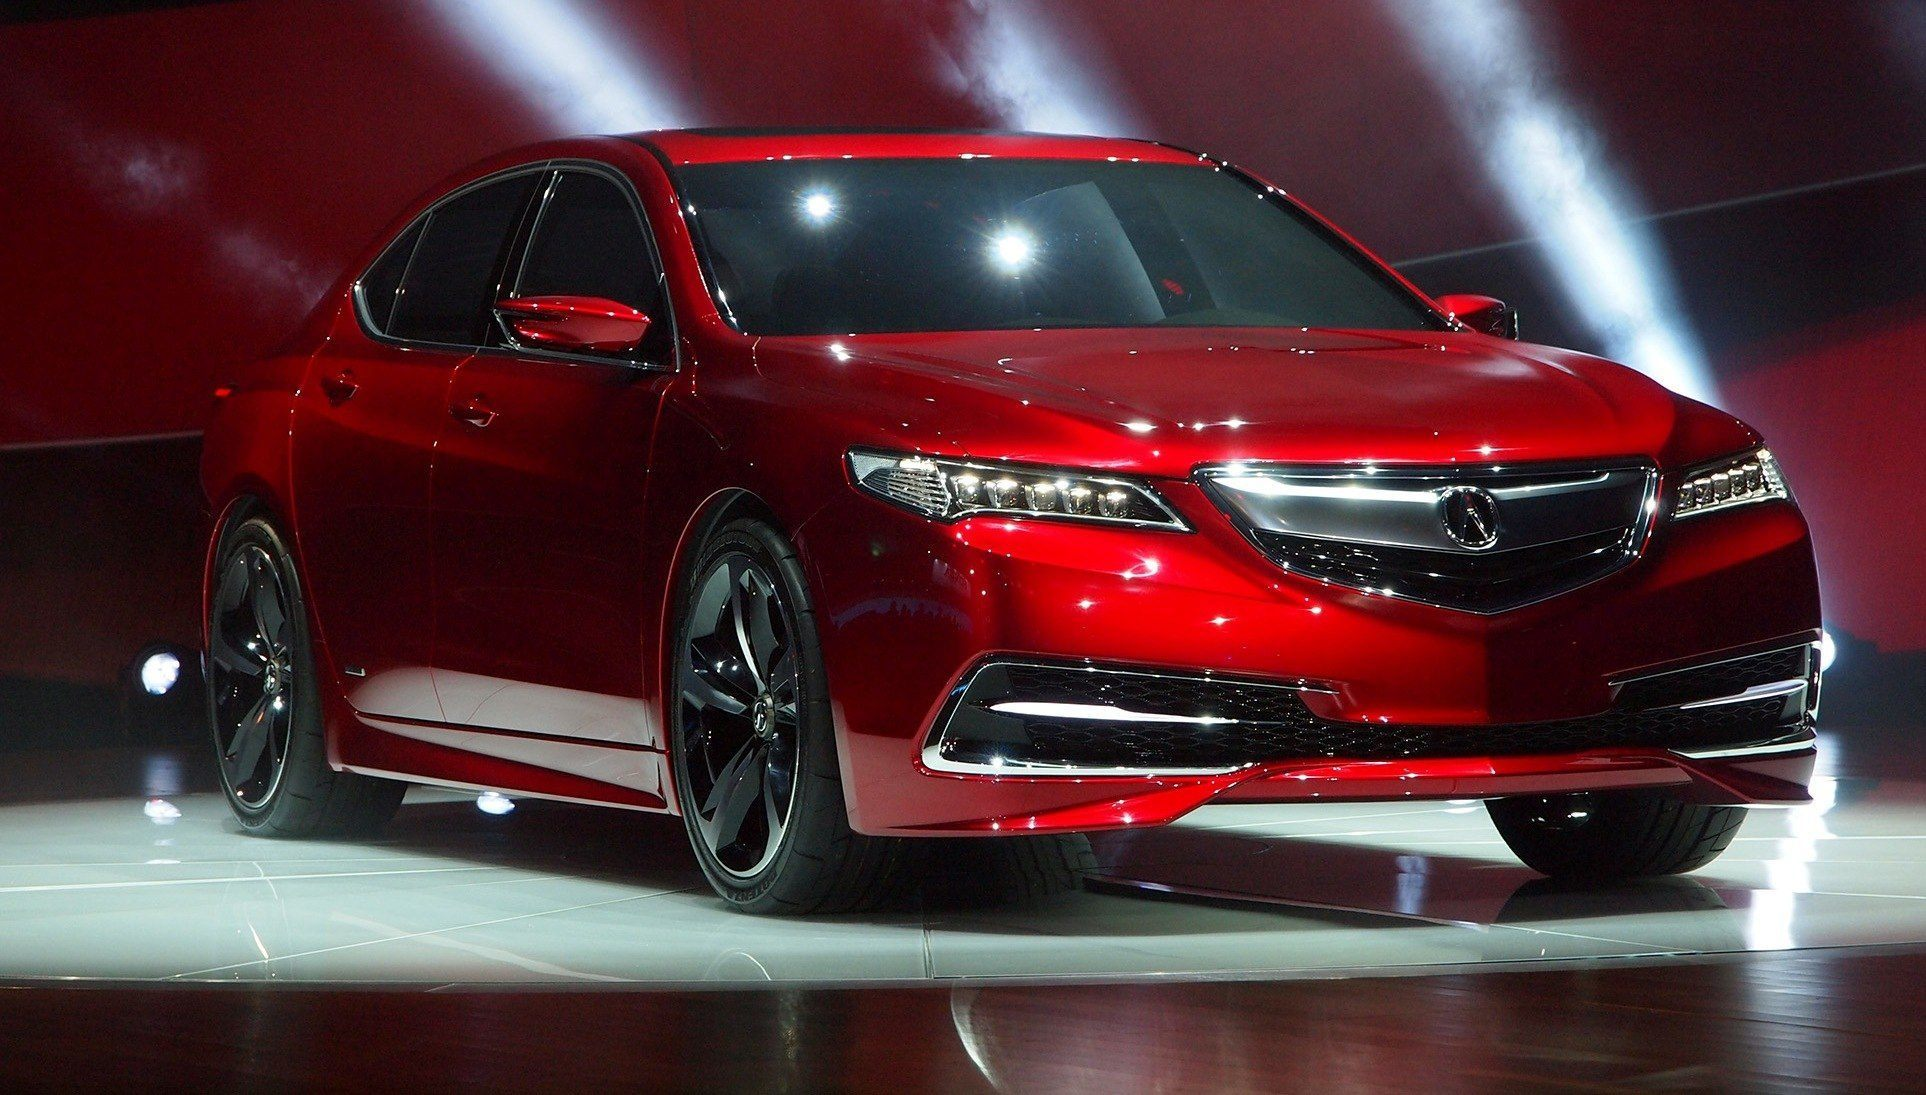 Concept to Reality Acura TLX Prototype vs TLX GT Racer vs Real